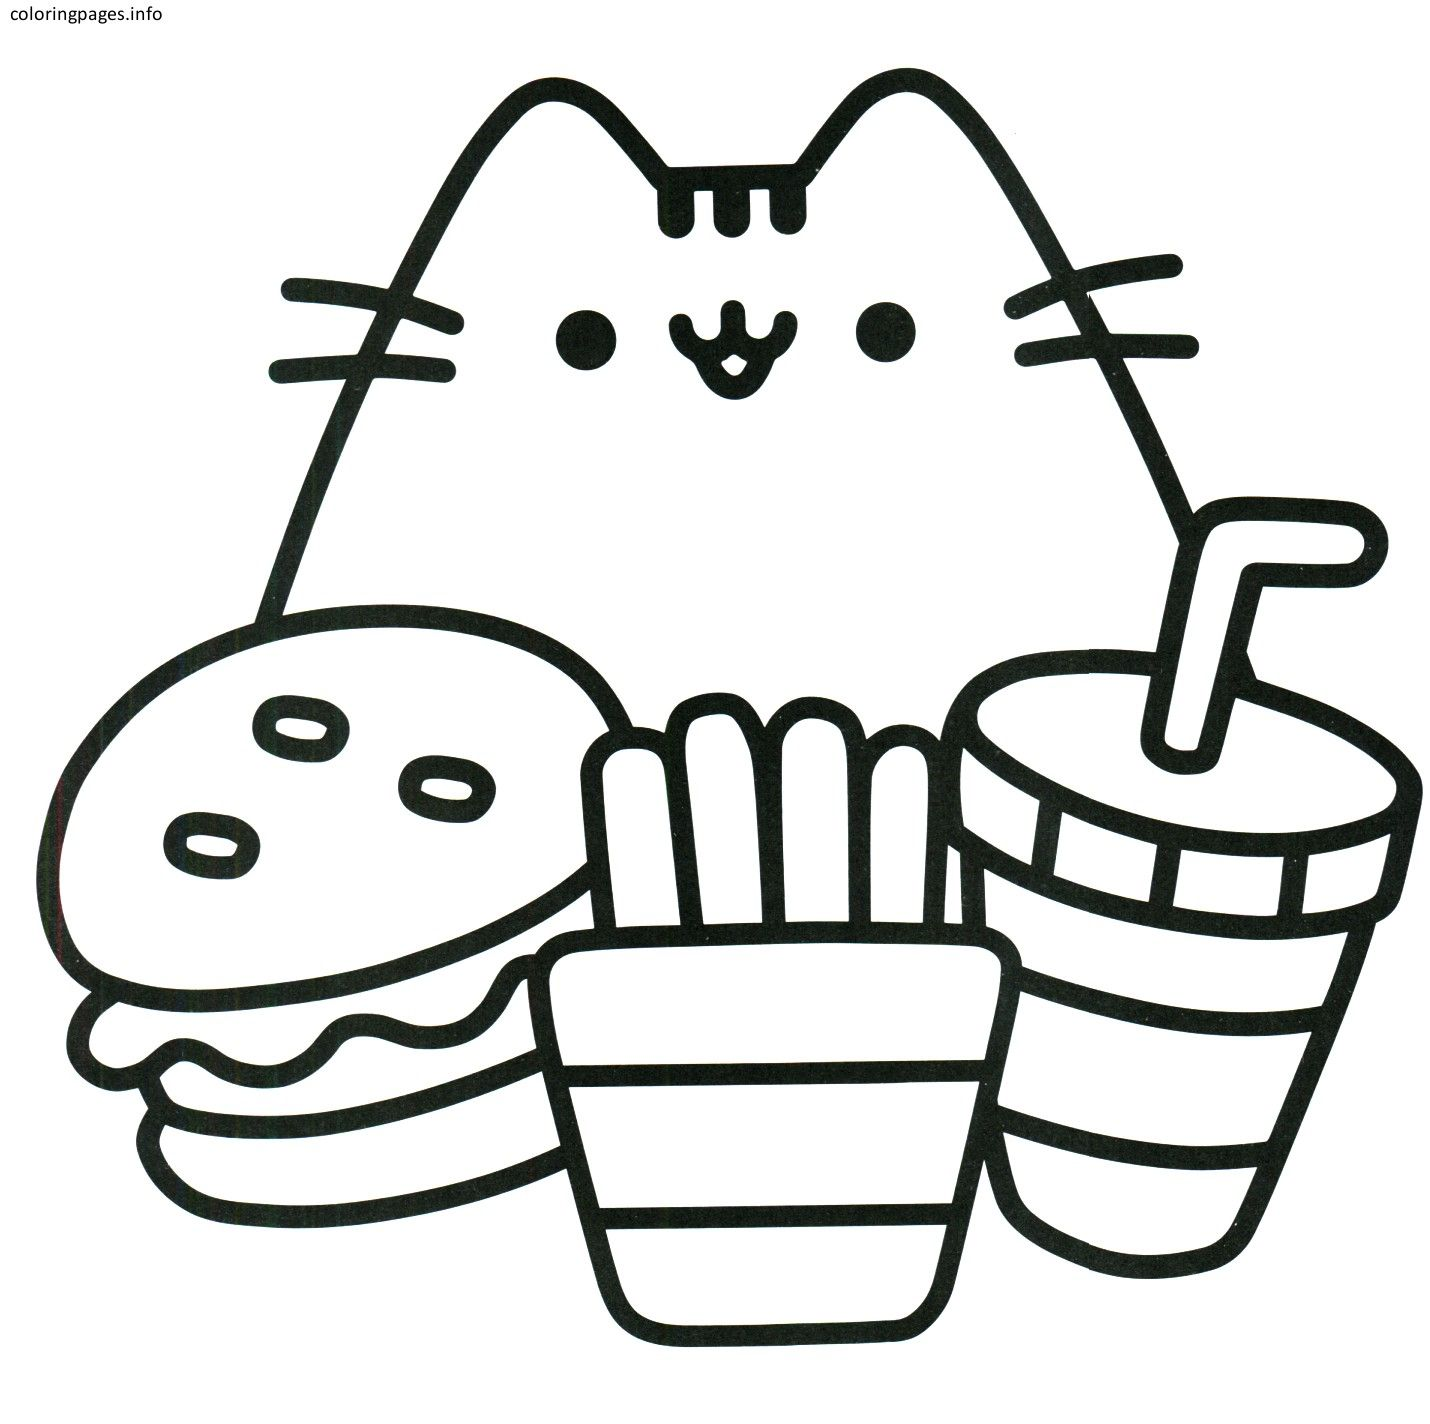 Pin By Michal Pisarek On Arts In 2020 Unicorn Coloring Pages Kids Printable Coloring Pages Hello Kitty Colouring Pages